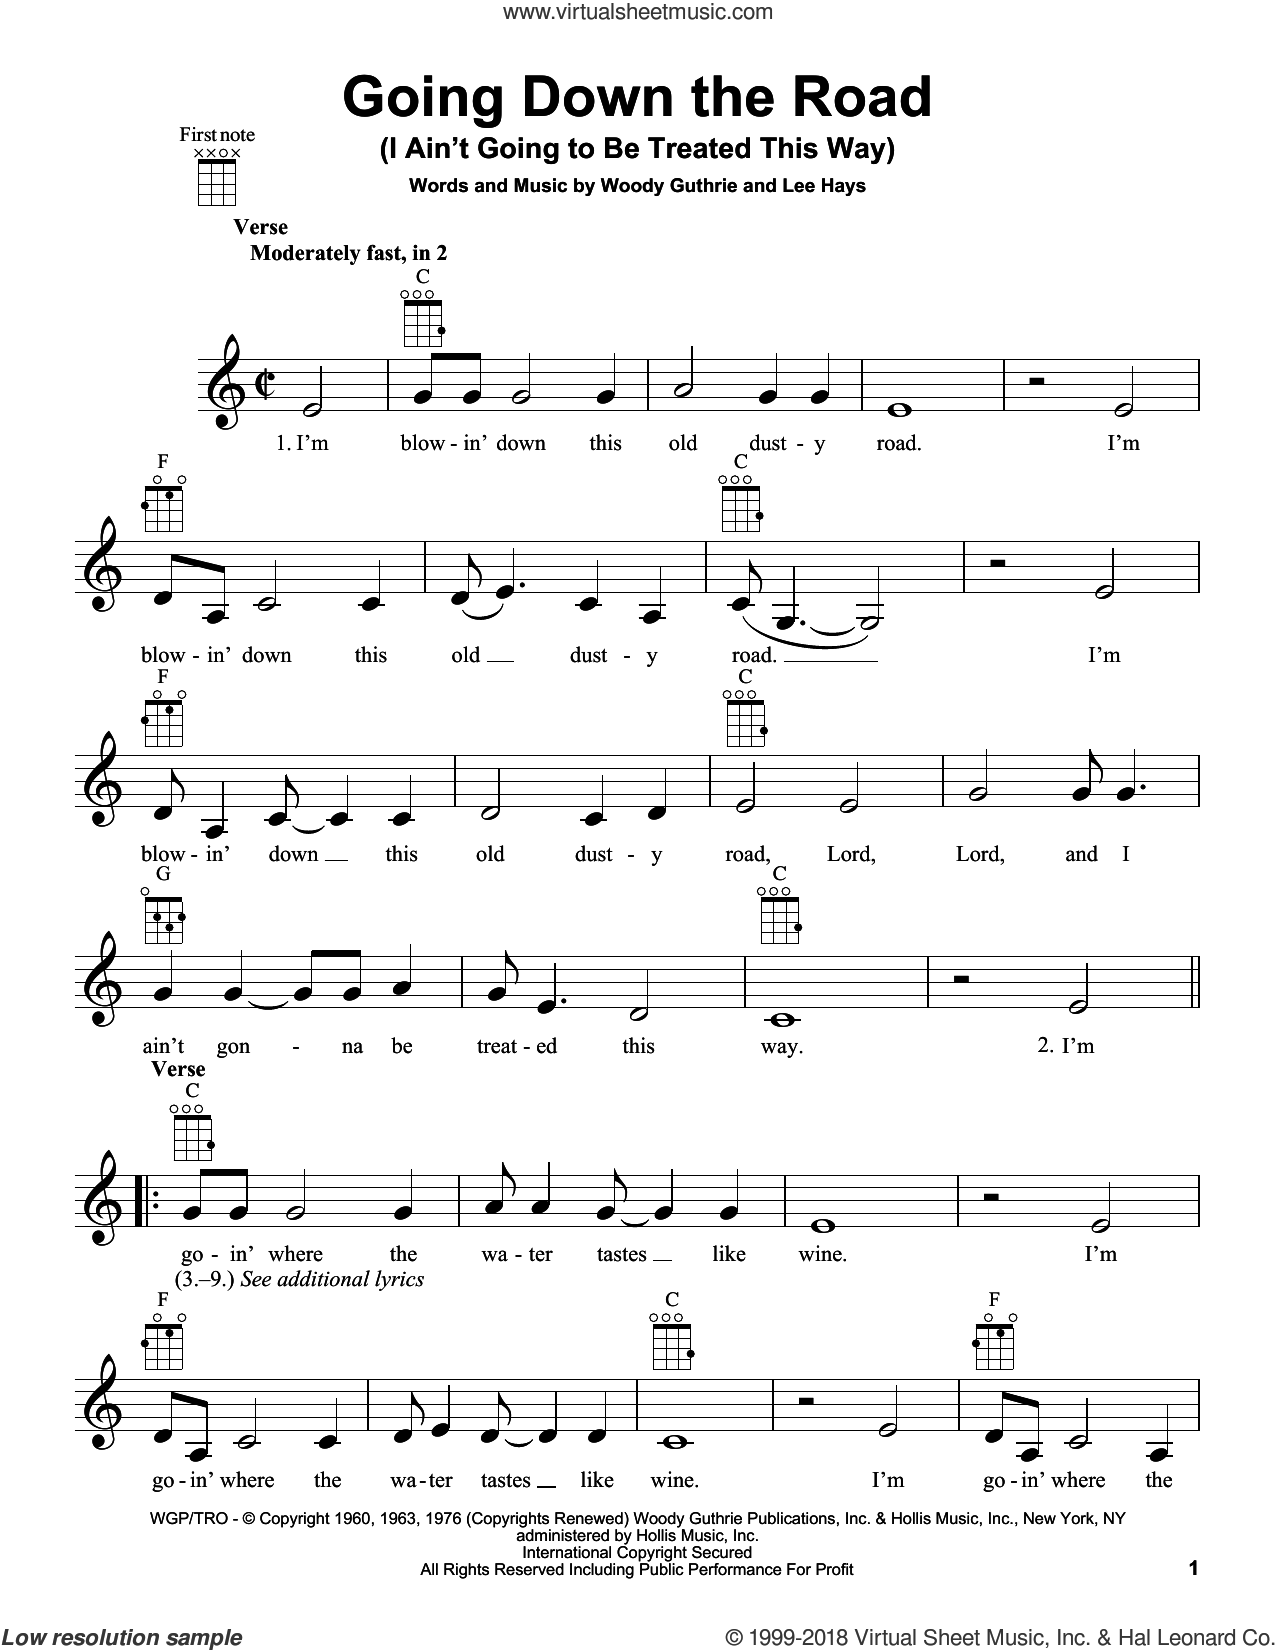 Going Down The Road (I Ain't Going To Be Treated This Way) sheet music for ukulele by Woody Guthrie and Lee Hays, intermediate skill level